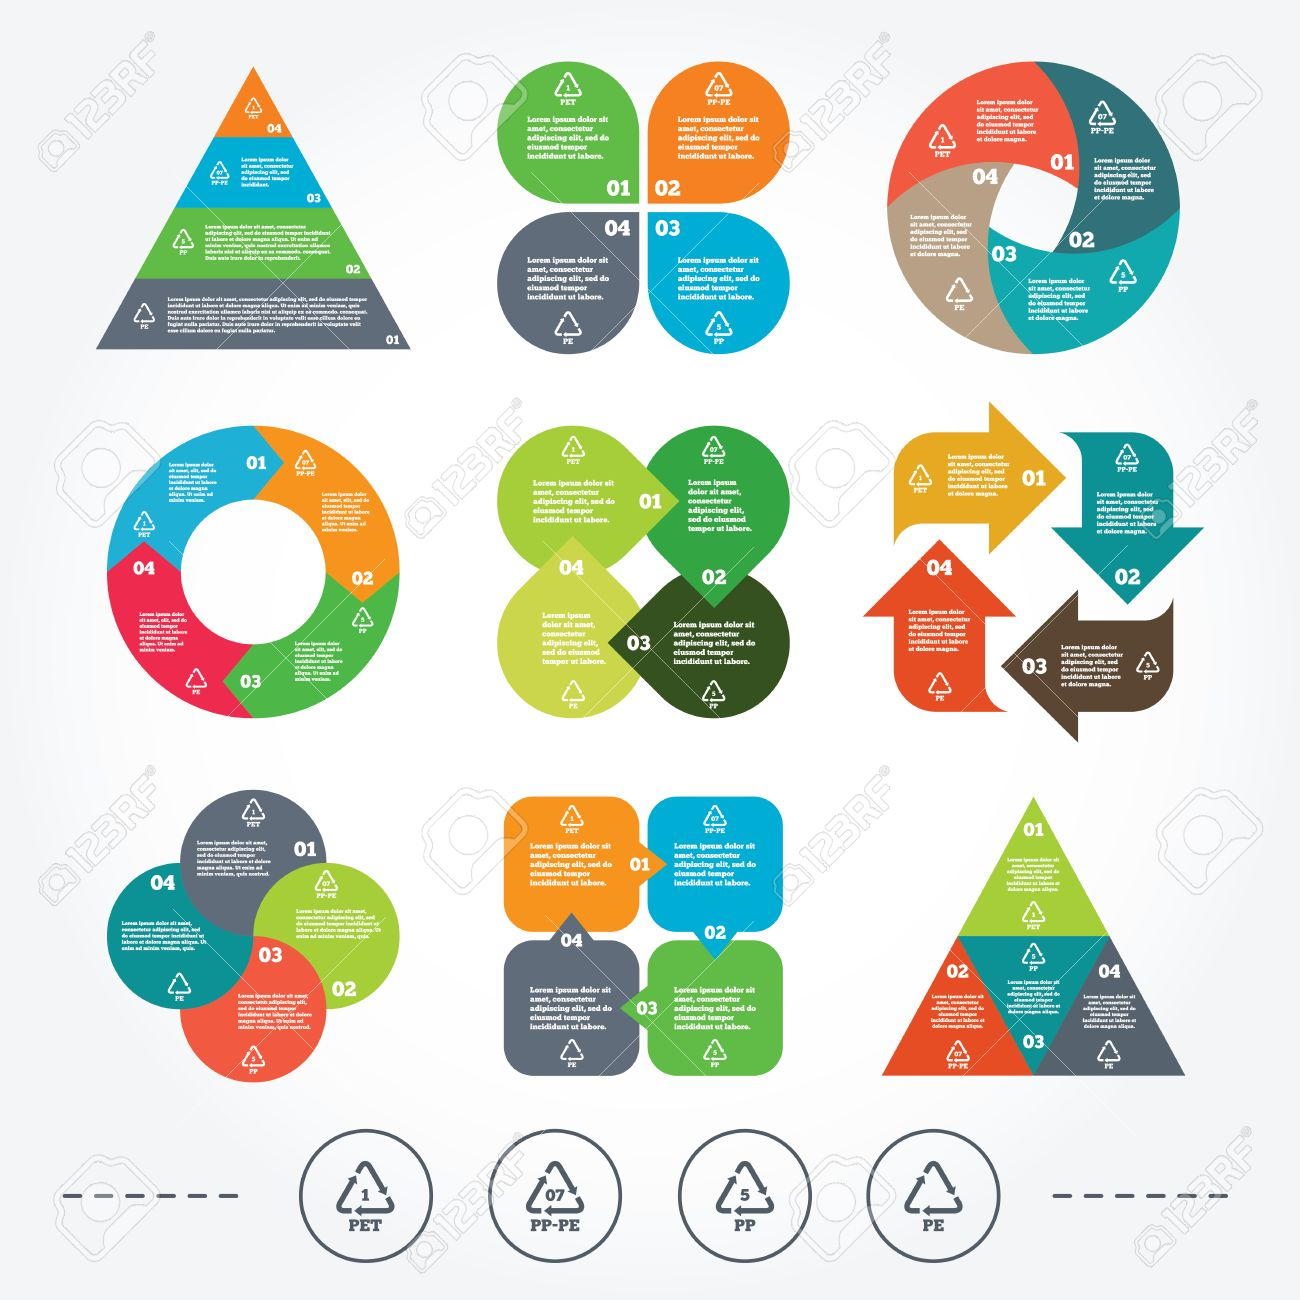 Circle And Triangle Diagram Charts. PET 1, PP-pe 07, PP 5 And ...